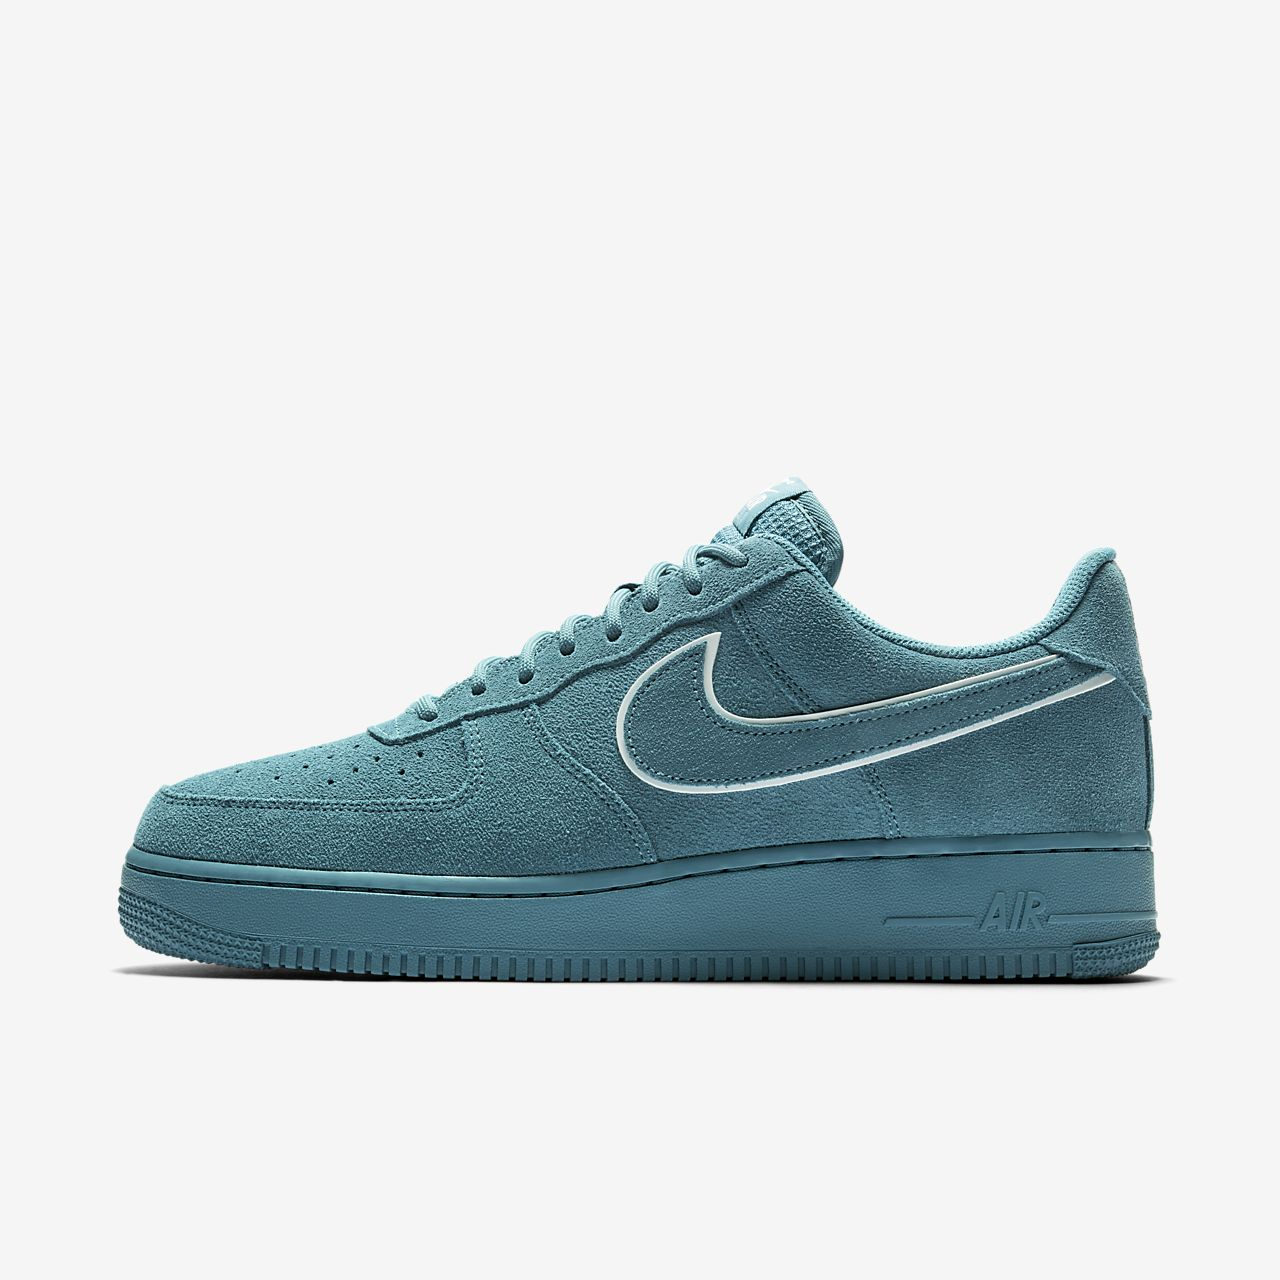 nike air force one lv8 men's nz